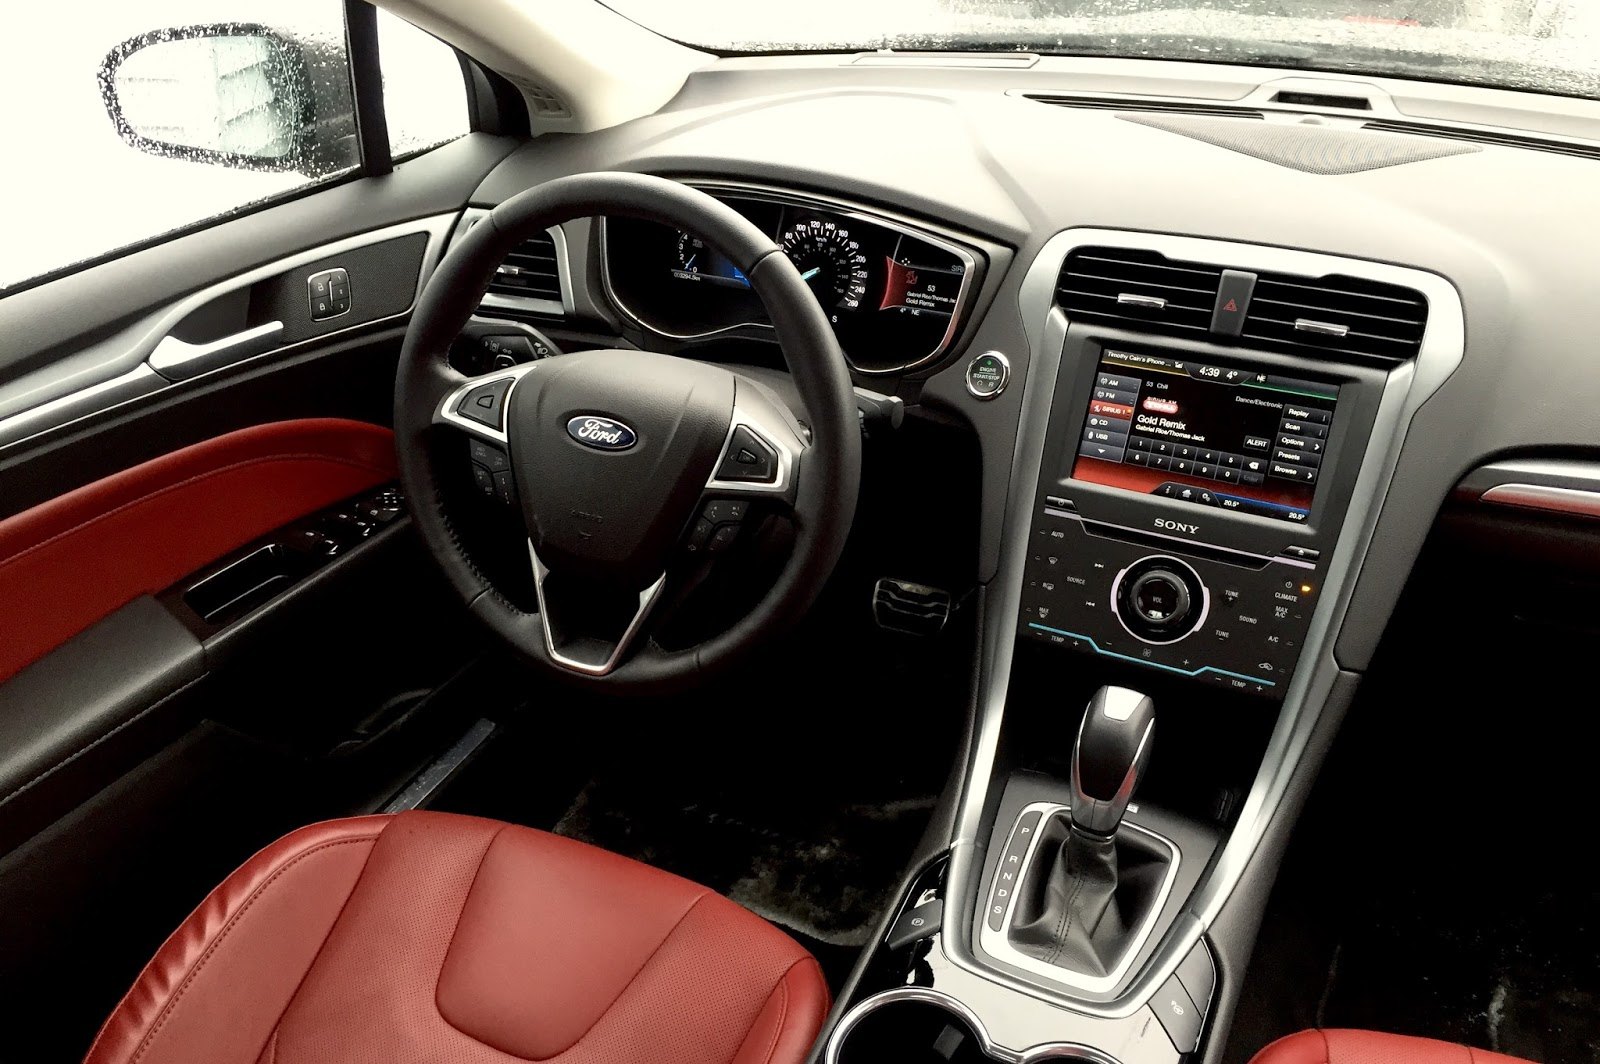 2015 FORD FUSION Titanium brick red interior